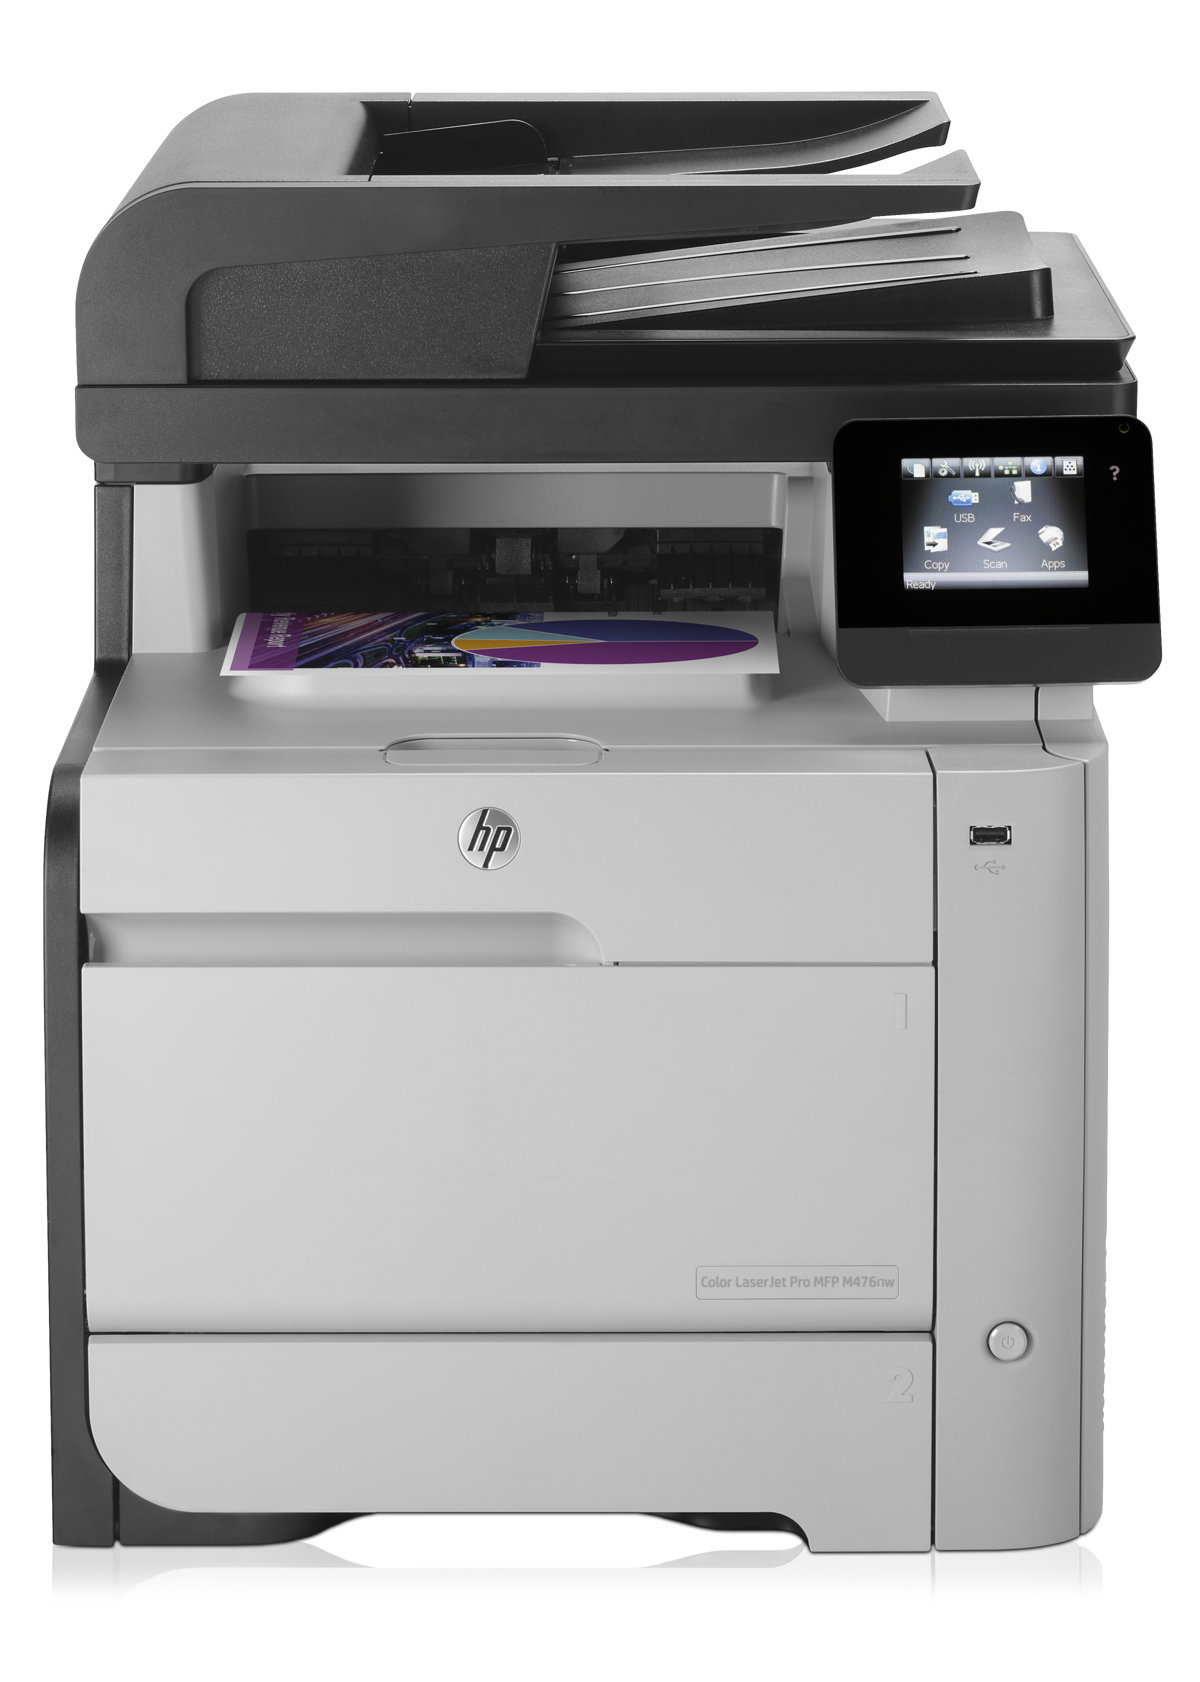 Hp m750 color printing cost per page - 11 11x17 Color Laser Printer Comparison Hp Laserjet Pro M476nw Wireless Color Multifunction All In